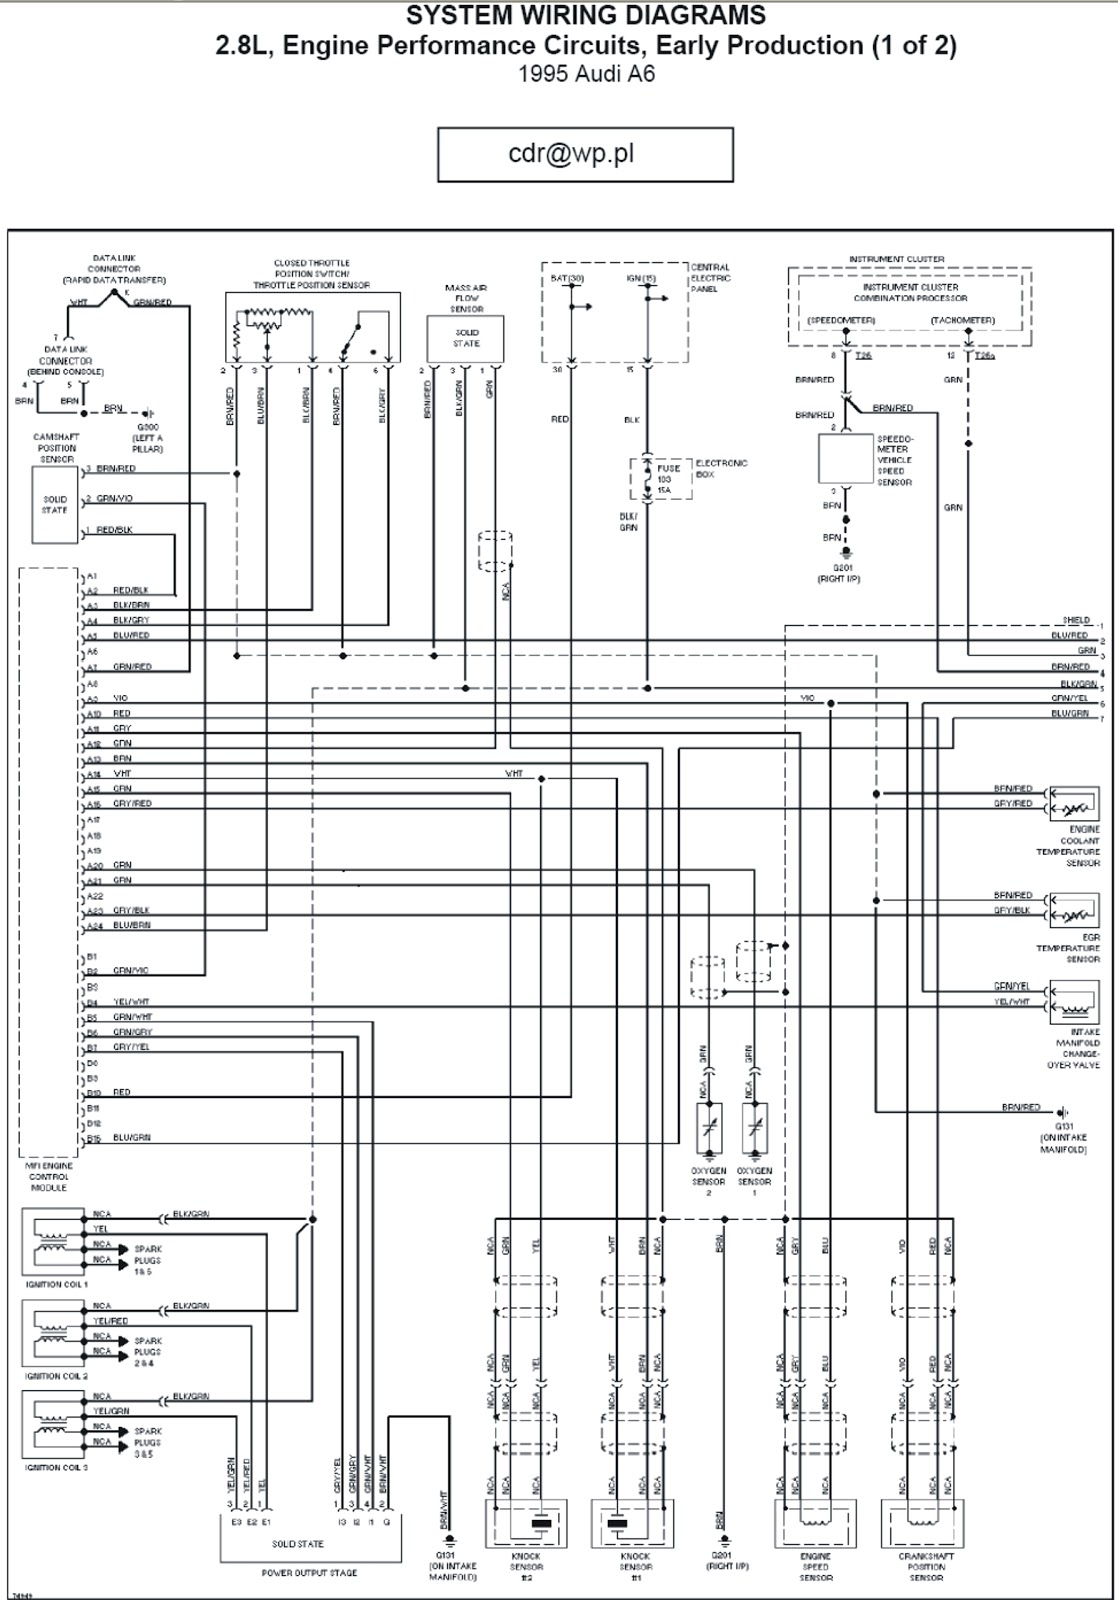 audi tt fuse box diagram wiring diagram database 2002 audi a6 fuse diagram moreover 2001 audi a6 engine diagram in [ 1118 x 1600 Pixel ]